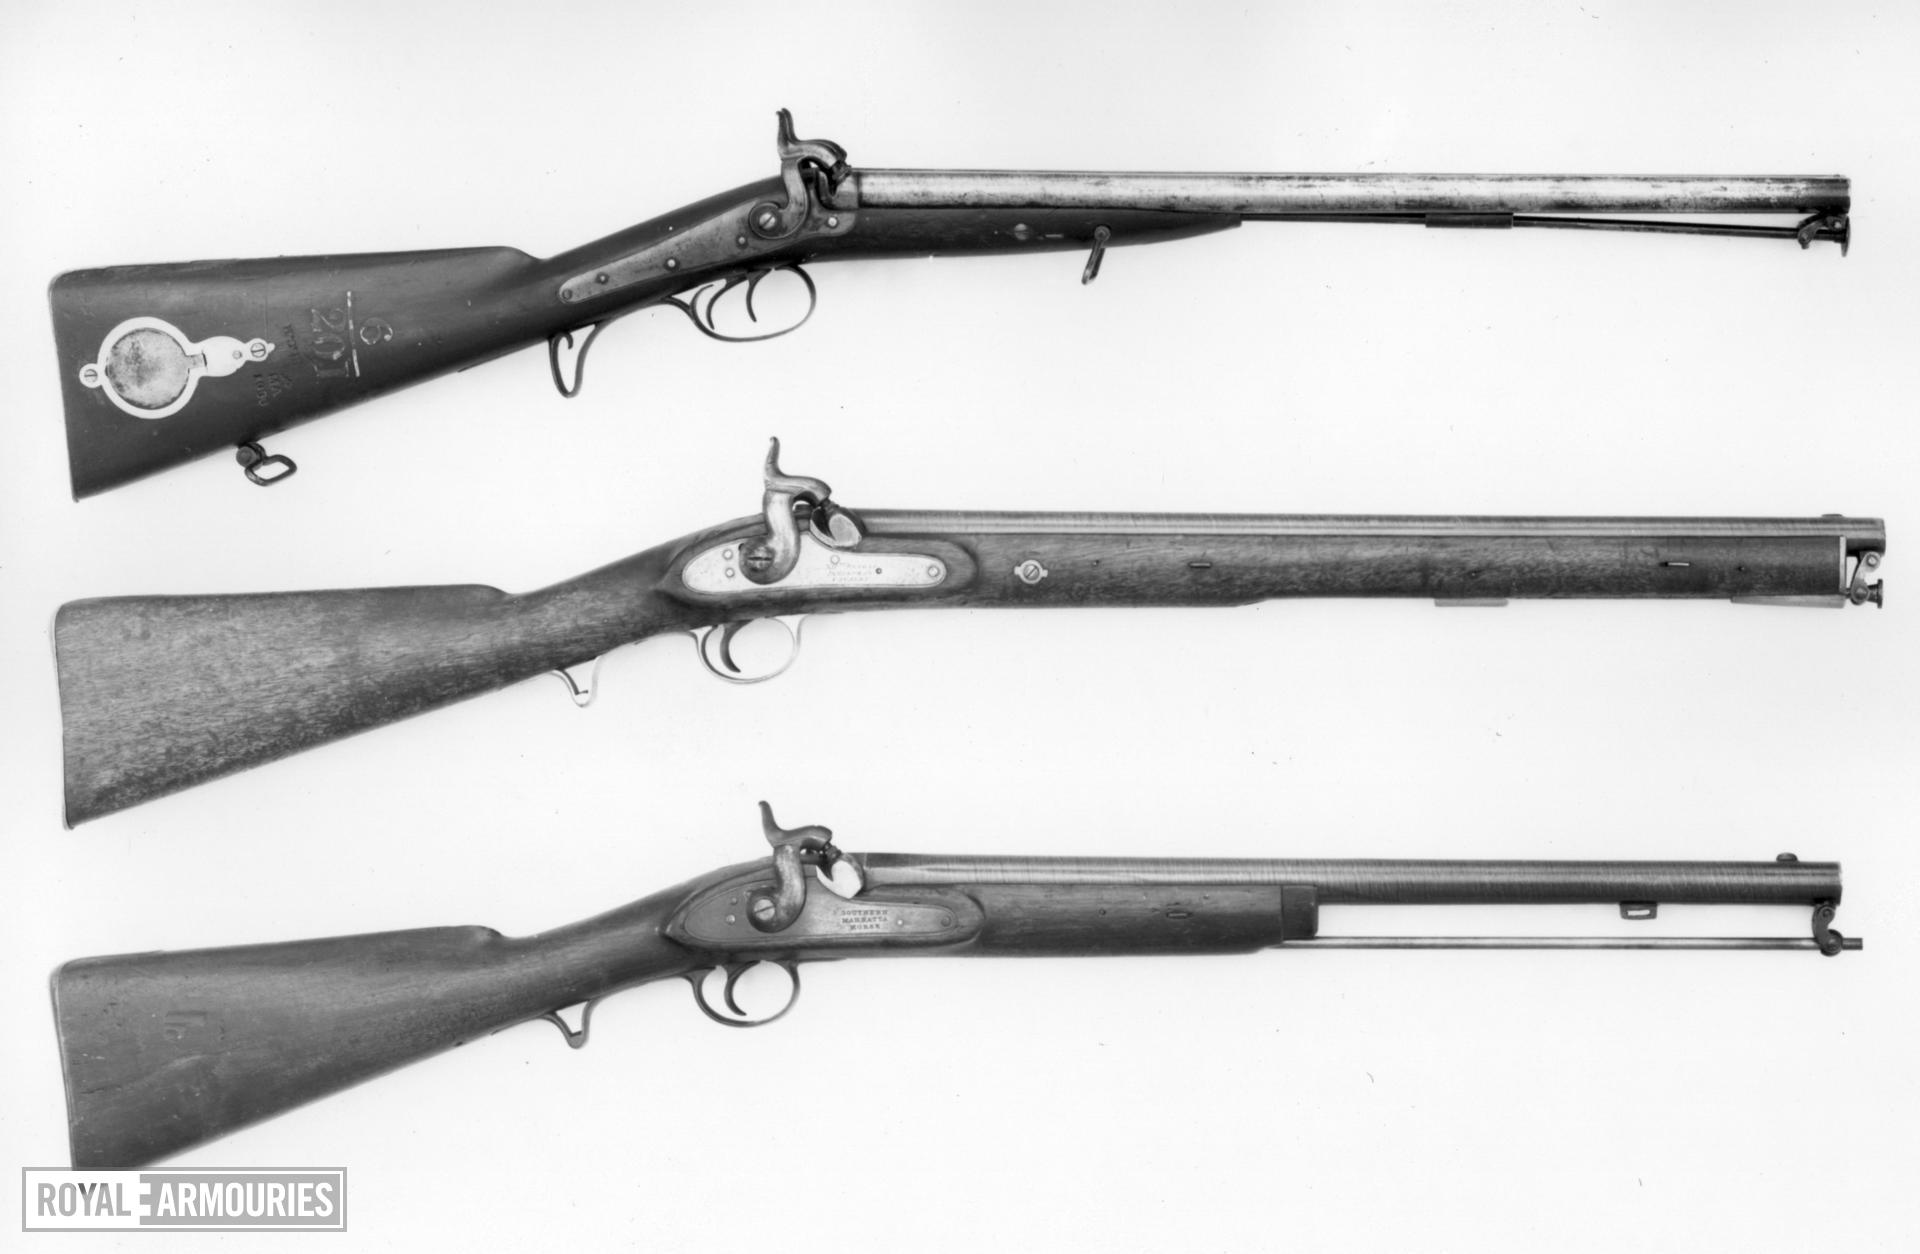 Percussion muzzle-loading military double-barrelled carbine - By Hollis and Sheath Supplied by Garden & Son